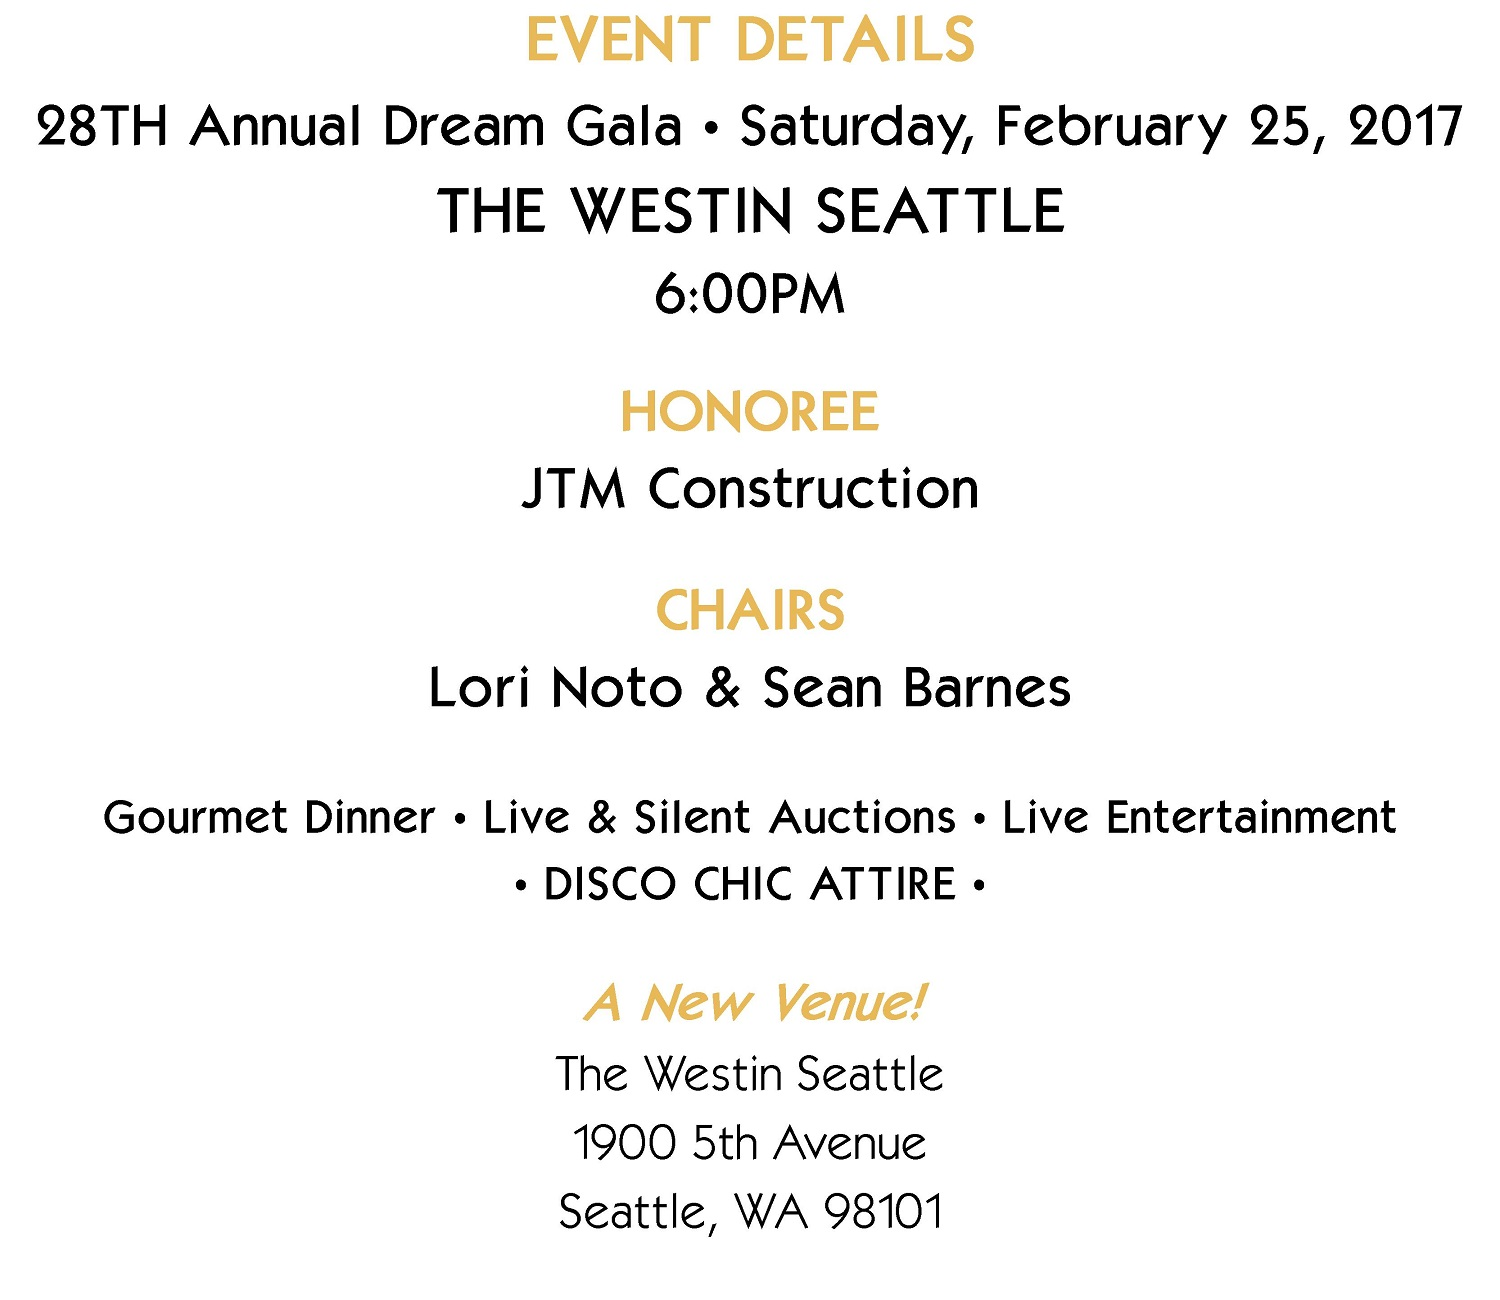 Jdrf Seattle Guild 28th Annual Dream Gala